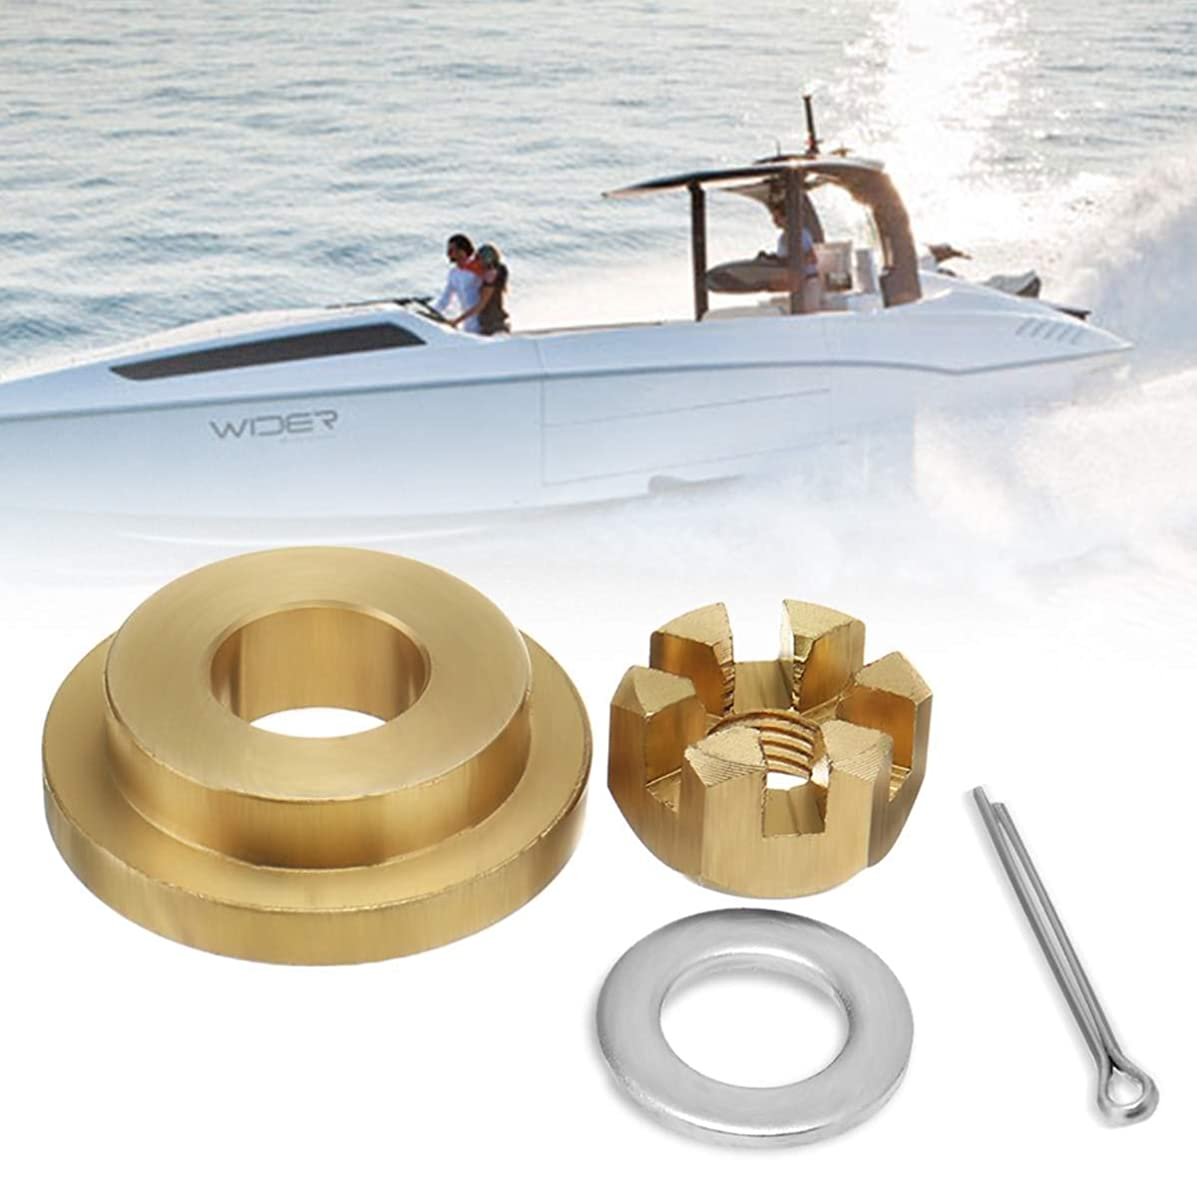 Value.Trade.Inc - 4Pcs For Yamaha 9.9-15HP Marine Propeller Hardware Kits Thrust Washer Spacer Nut Split Pin Brass Boat Parts & Accessories